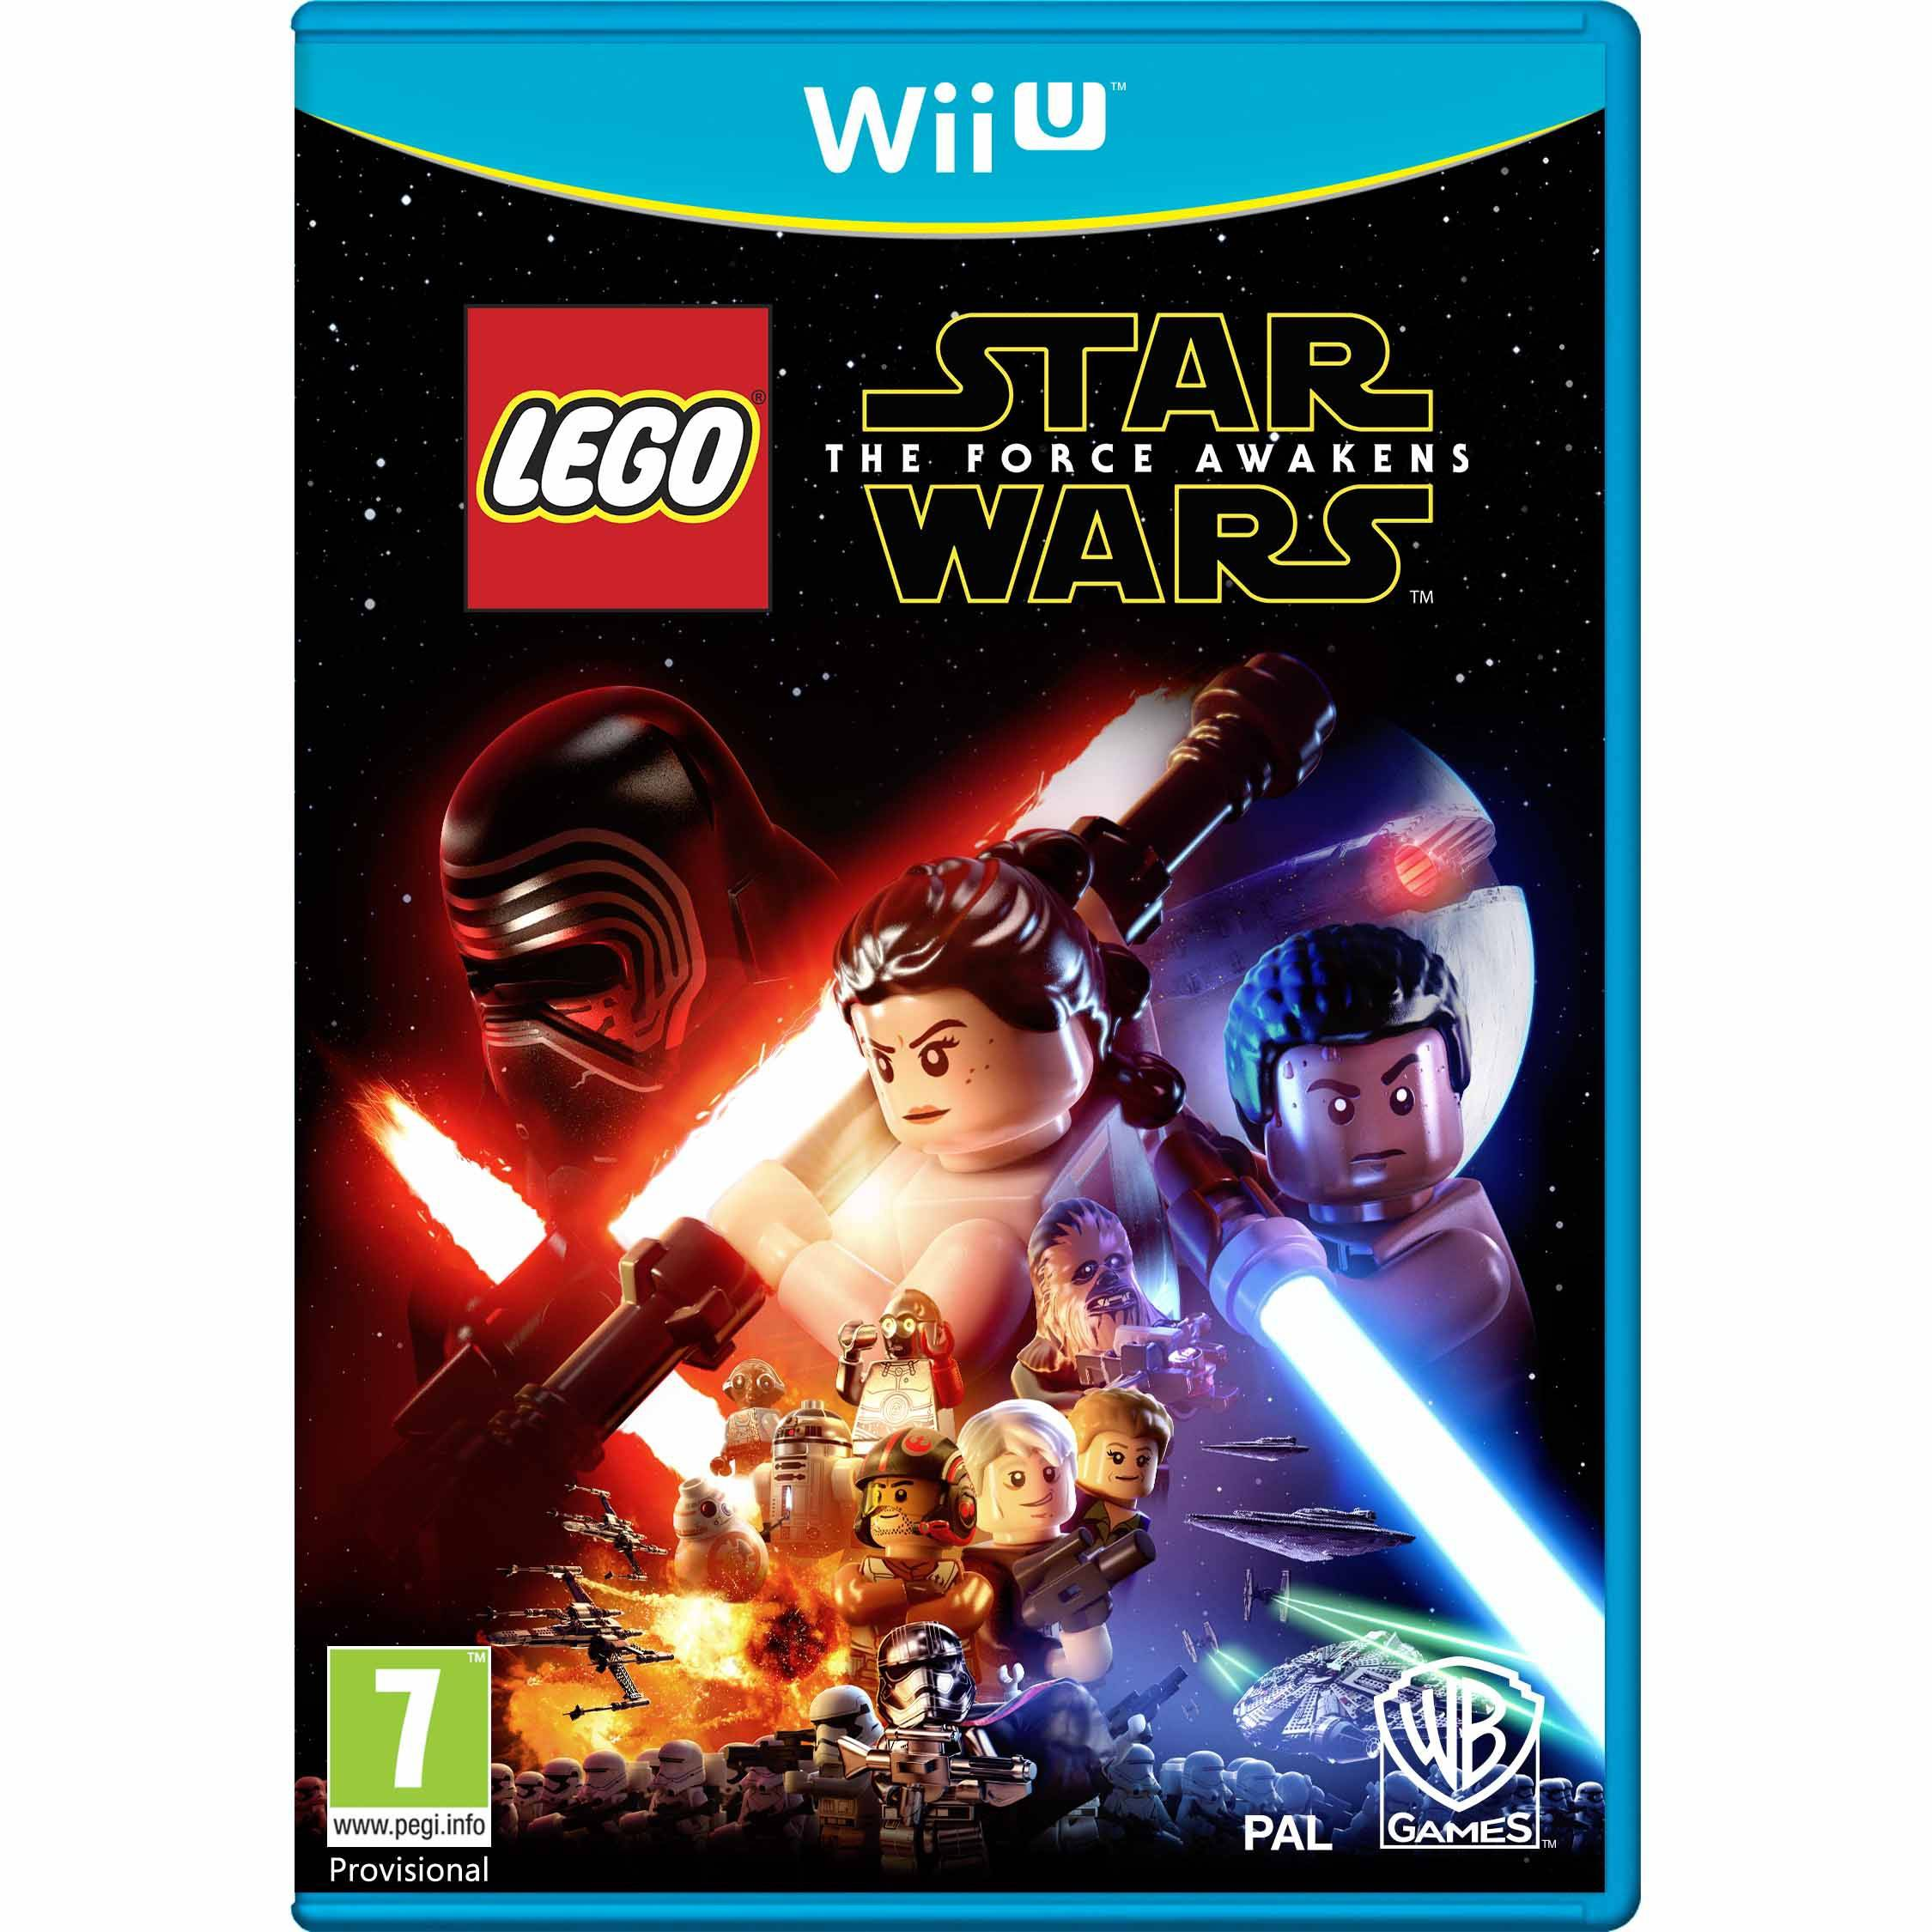 Warner Bros LEGO Star Wars: The Force Awakens (Wii U)